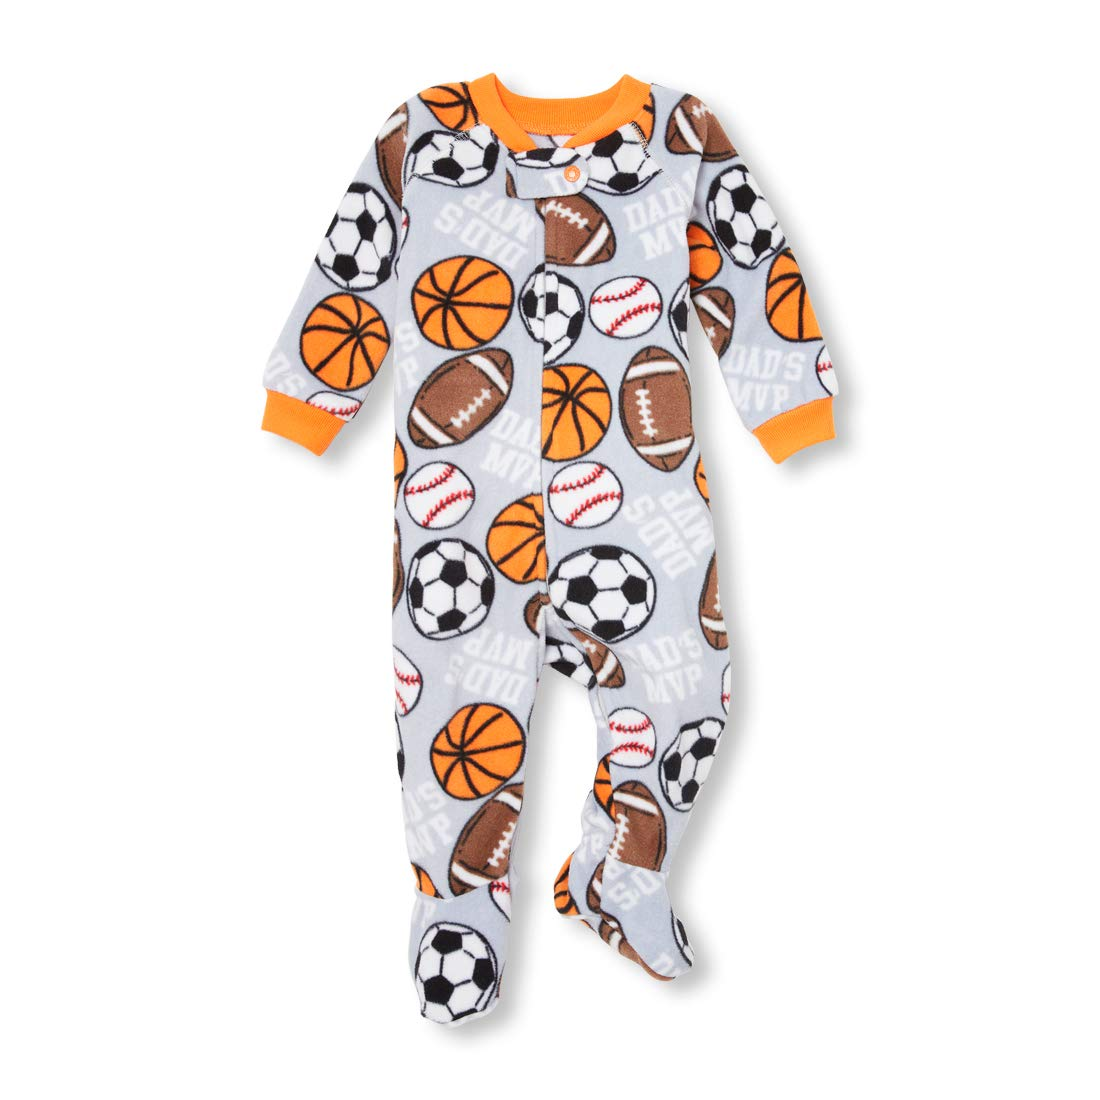 The Children's Place Baby Boys Zip Blanket Sleeper The Children's Place 2110949